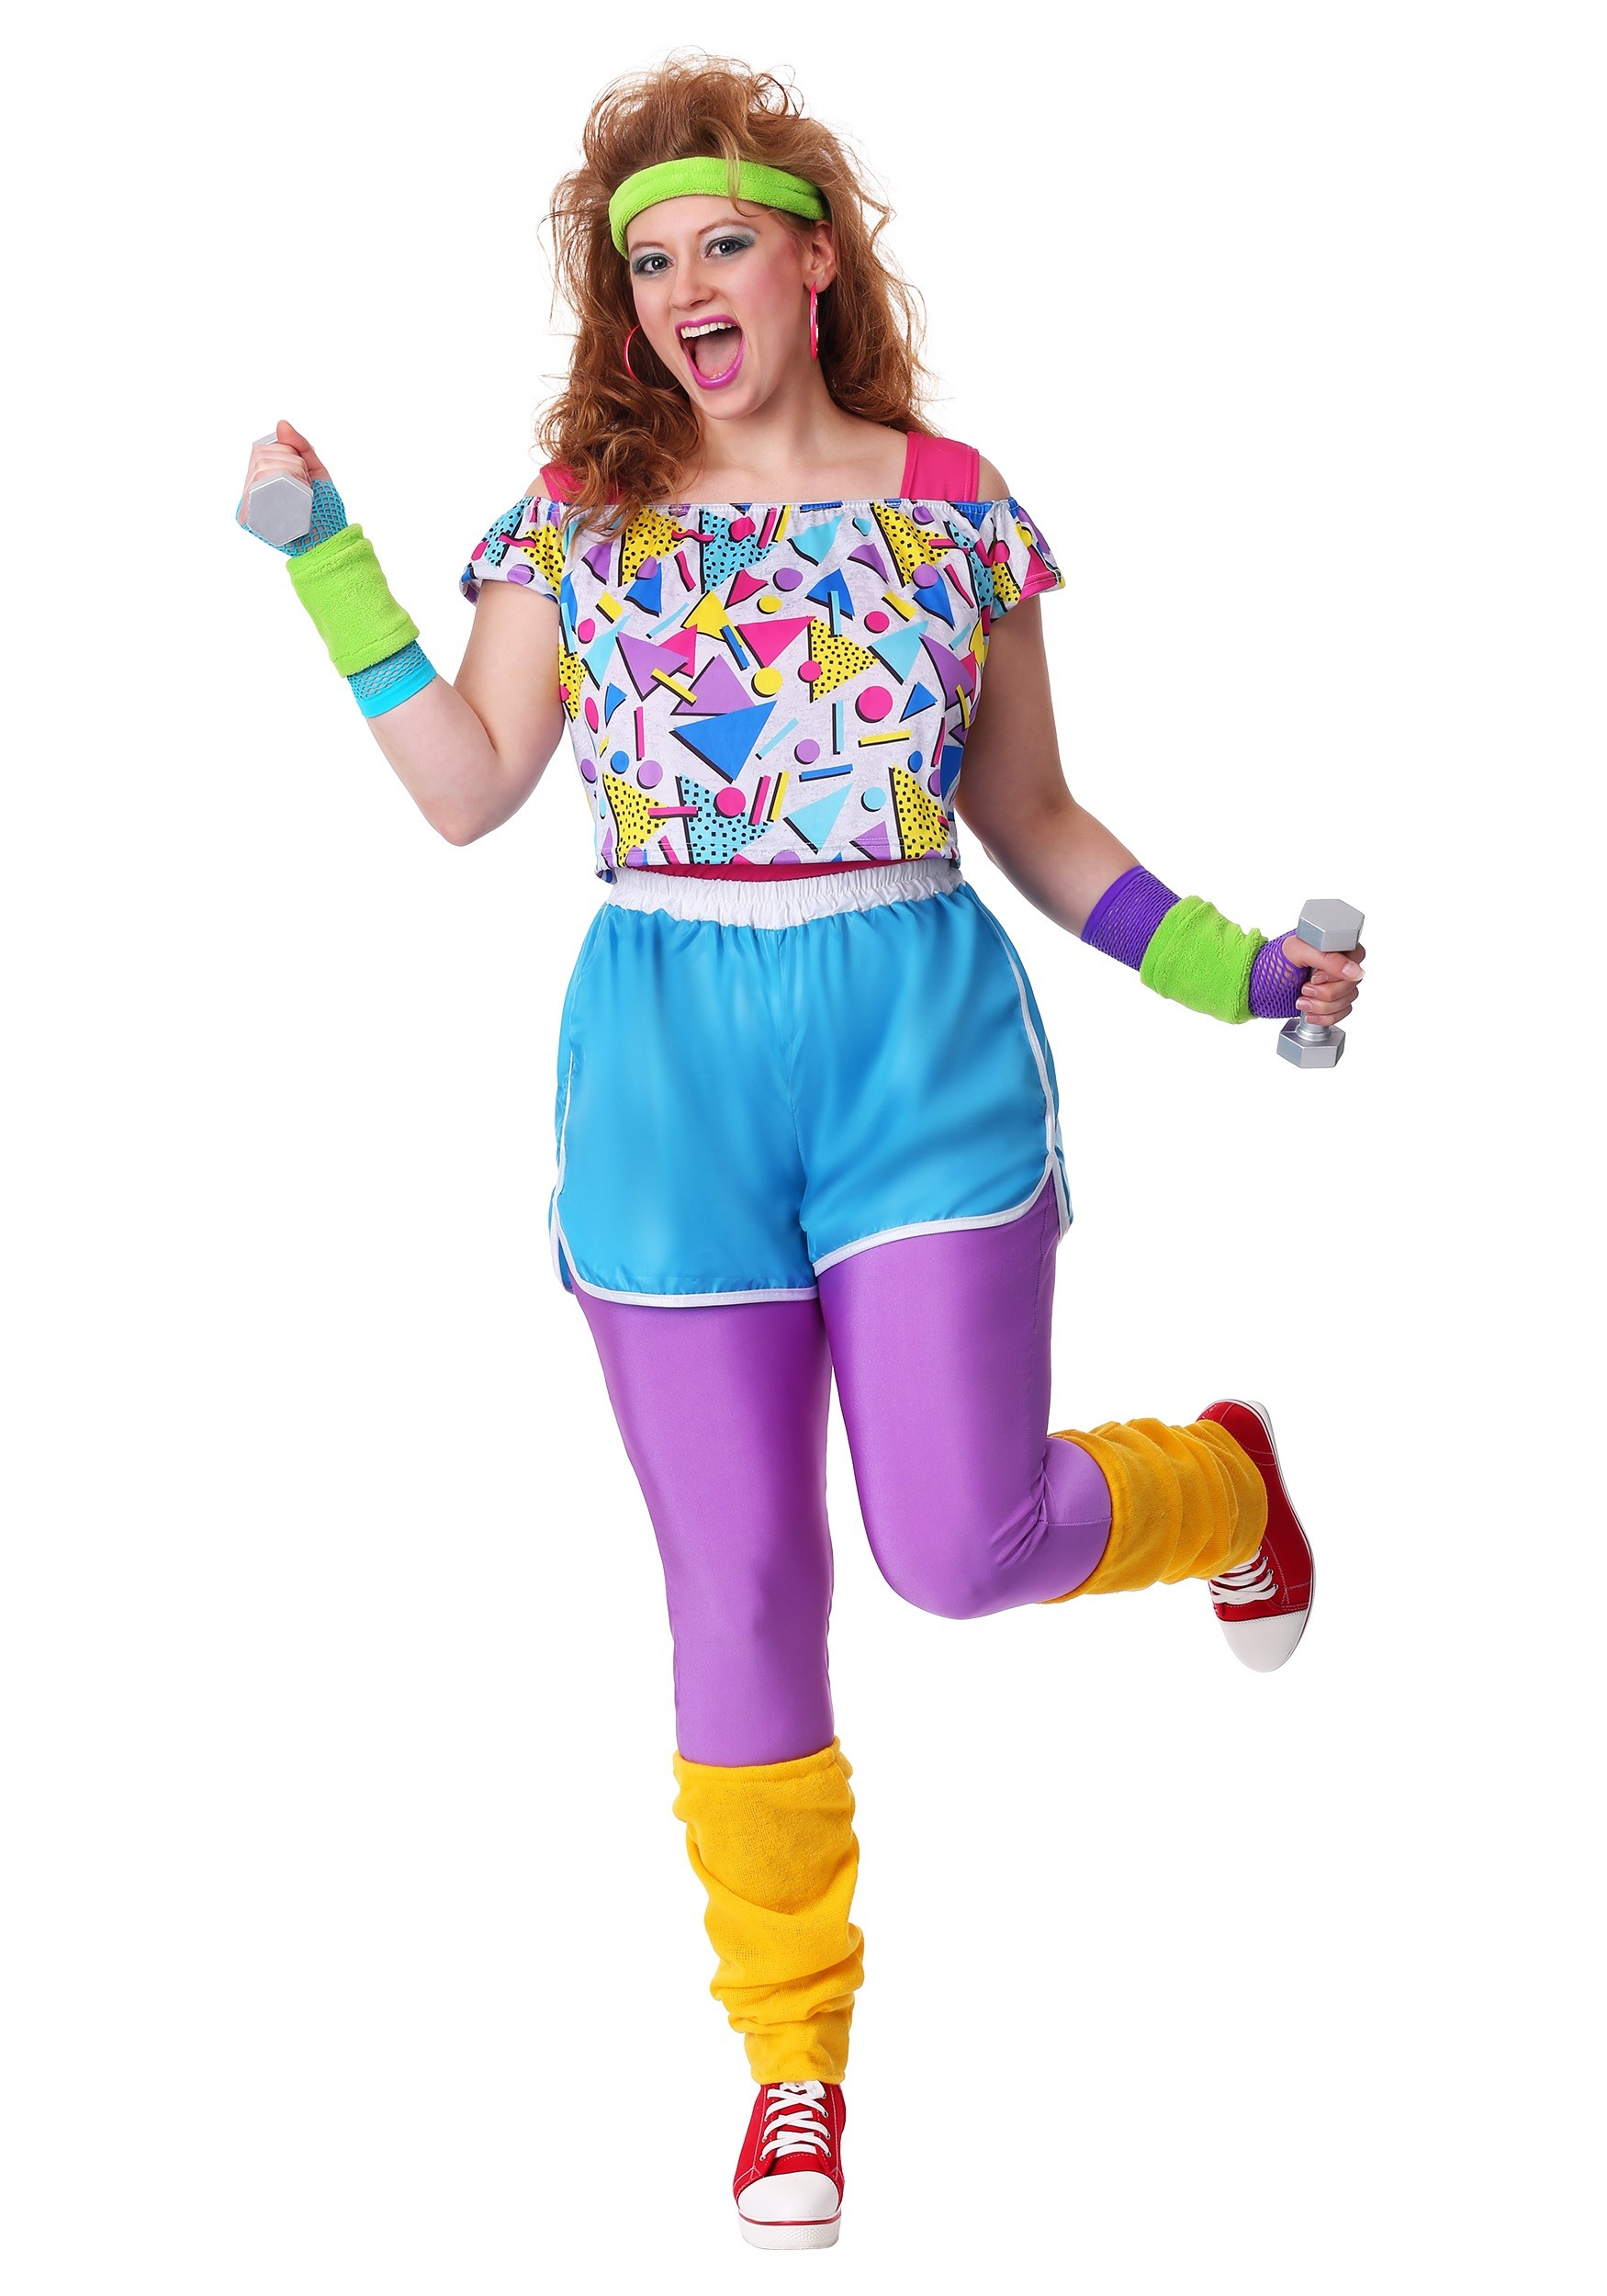 80s Fashion Trends 35 Iconic Looks From The Eighties: Work It Out 80s Women's Plus Size Costume